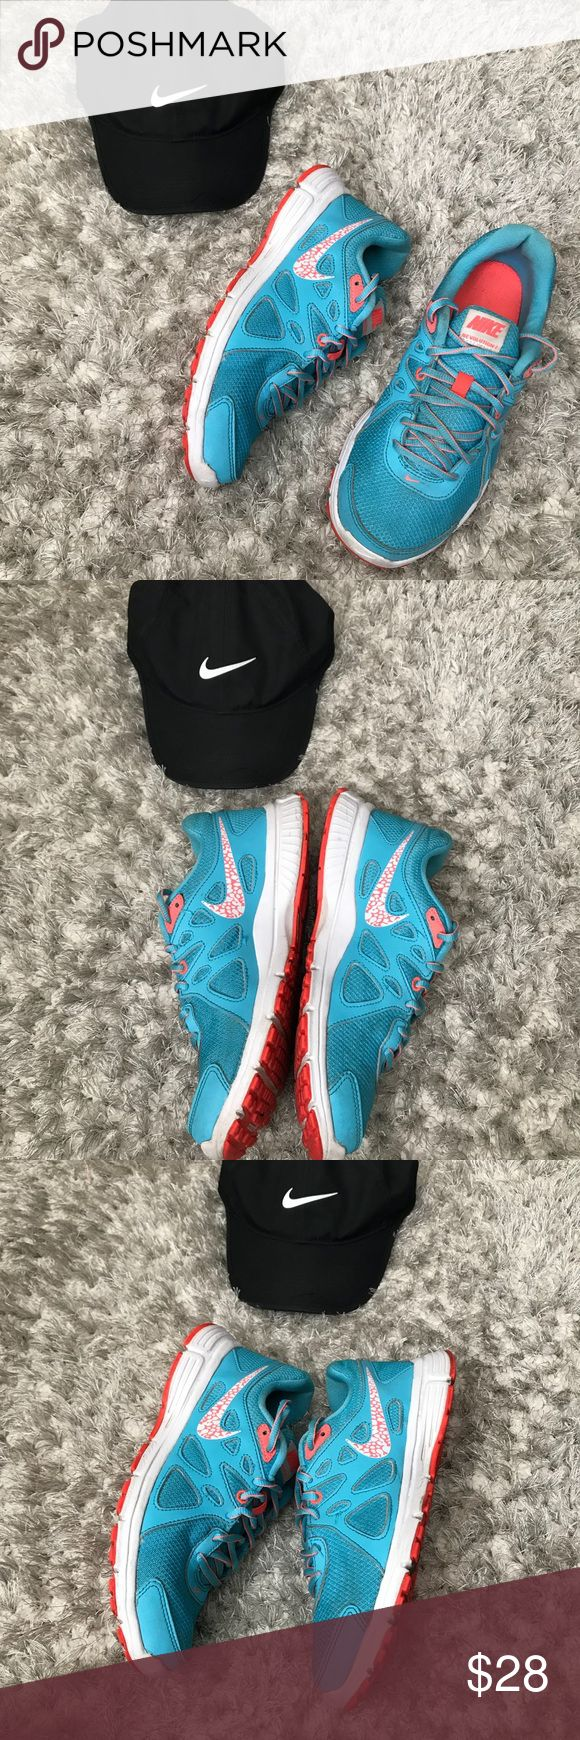 Nike Women's revolution 2 Size 8.5 In perfect condition Clearwater blue revolution 2 Size 8.5. No rips or stains. Hat not included Nike Shoes Sneakers